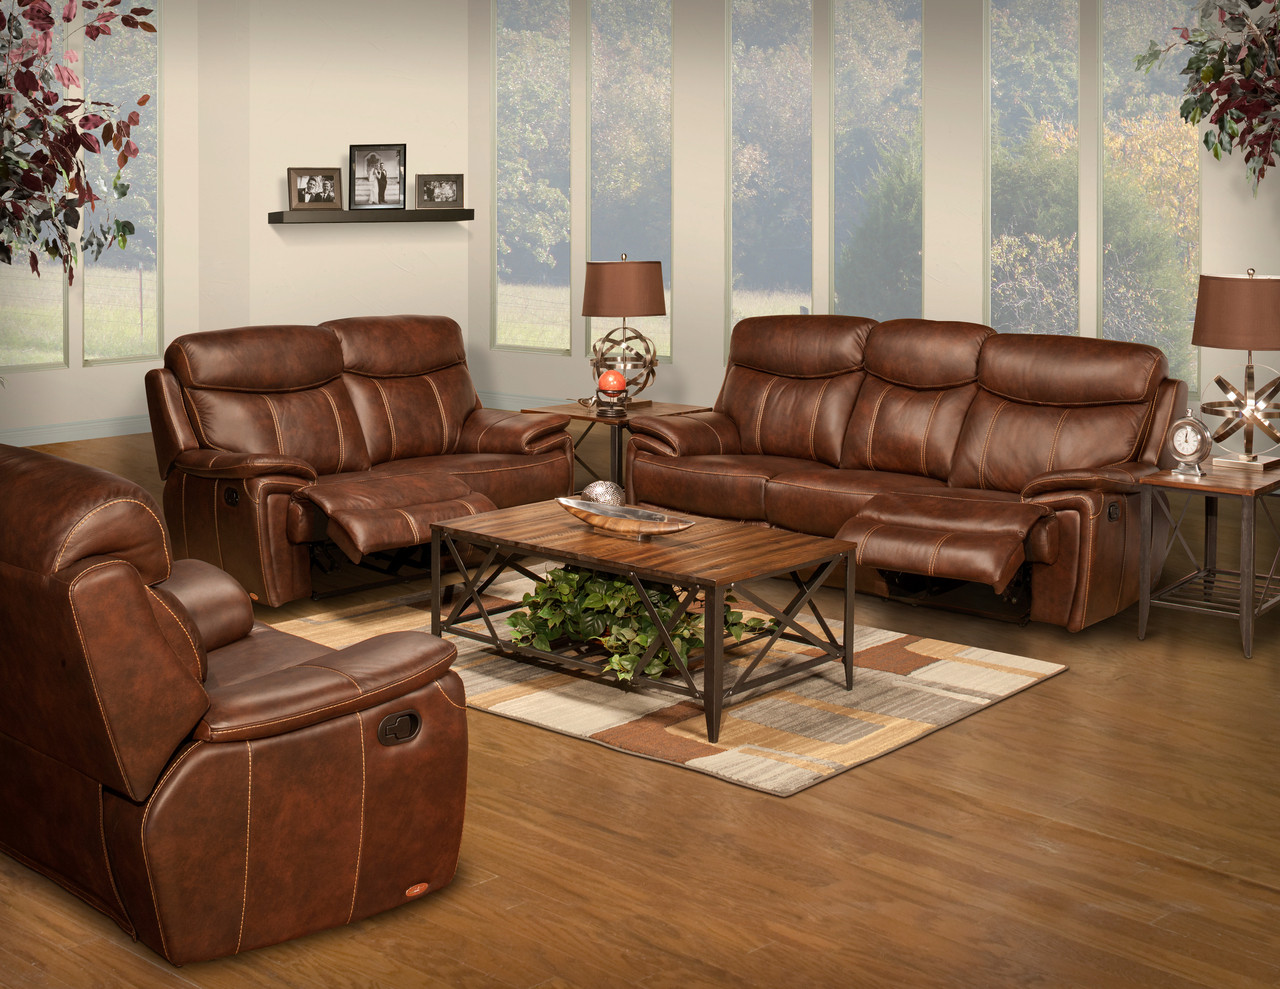 Legend Brown Top Grain Leather Reclining Livingroom Set Cb Furniture